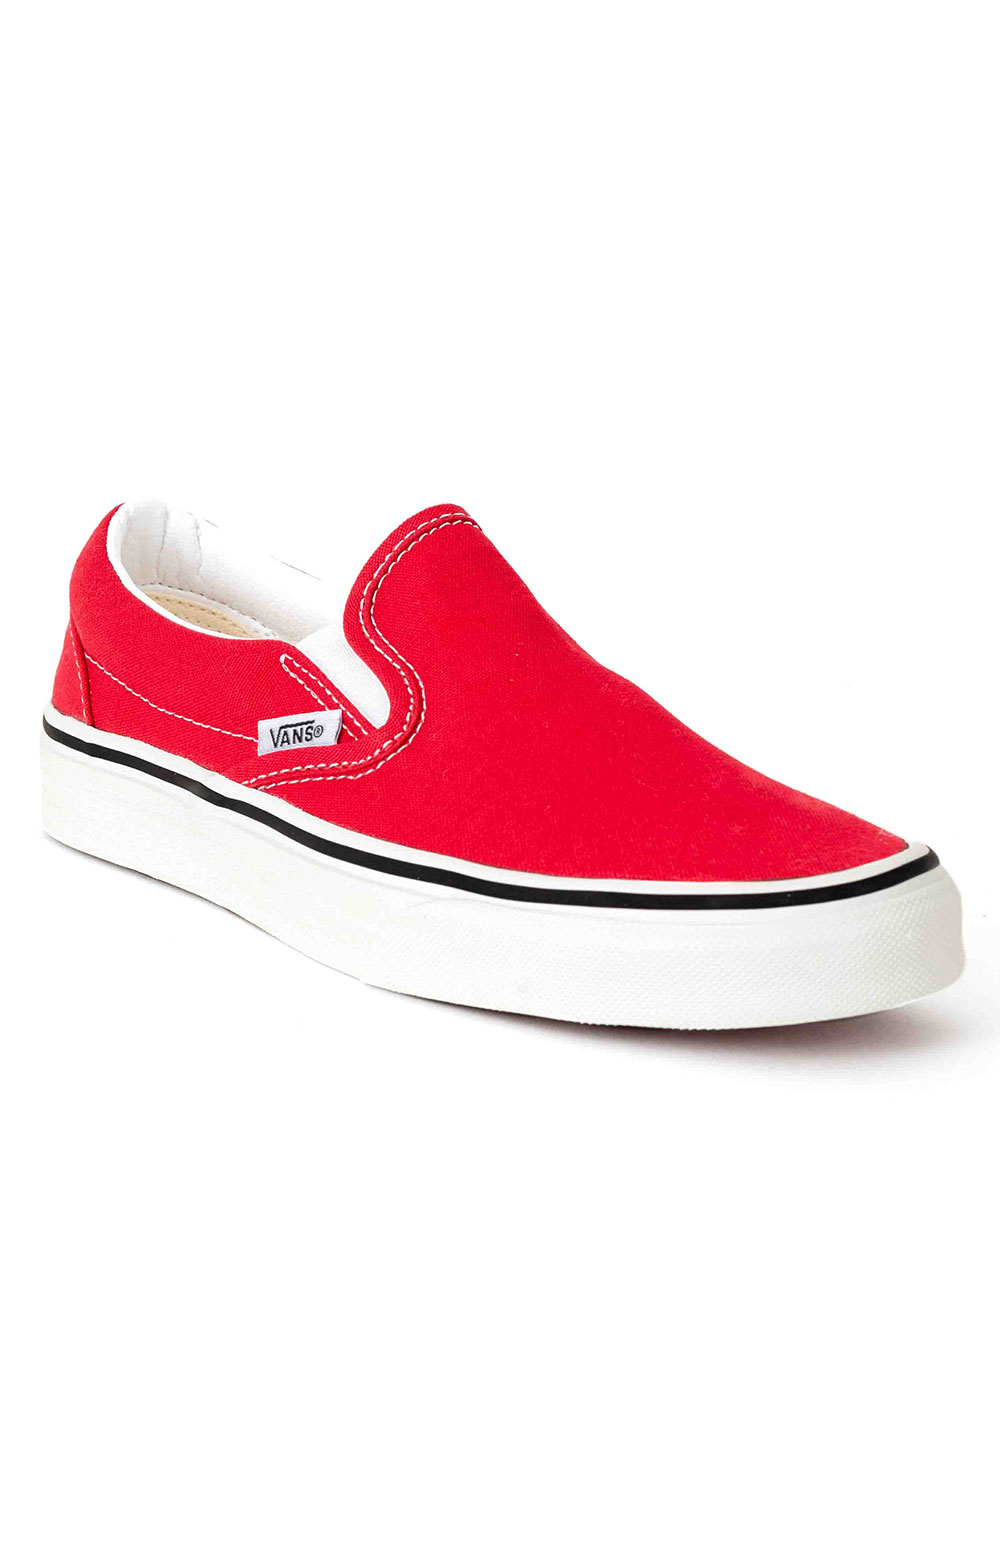 (BV3JV6) Classic Slip-On Shoe - Racing Red 3